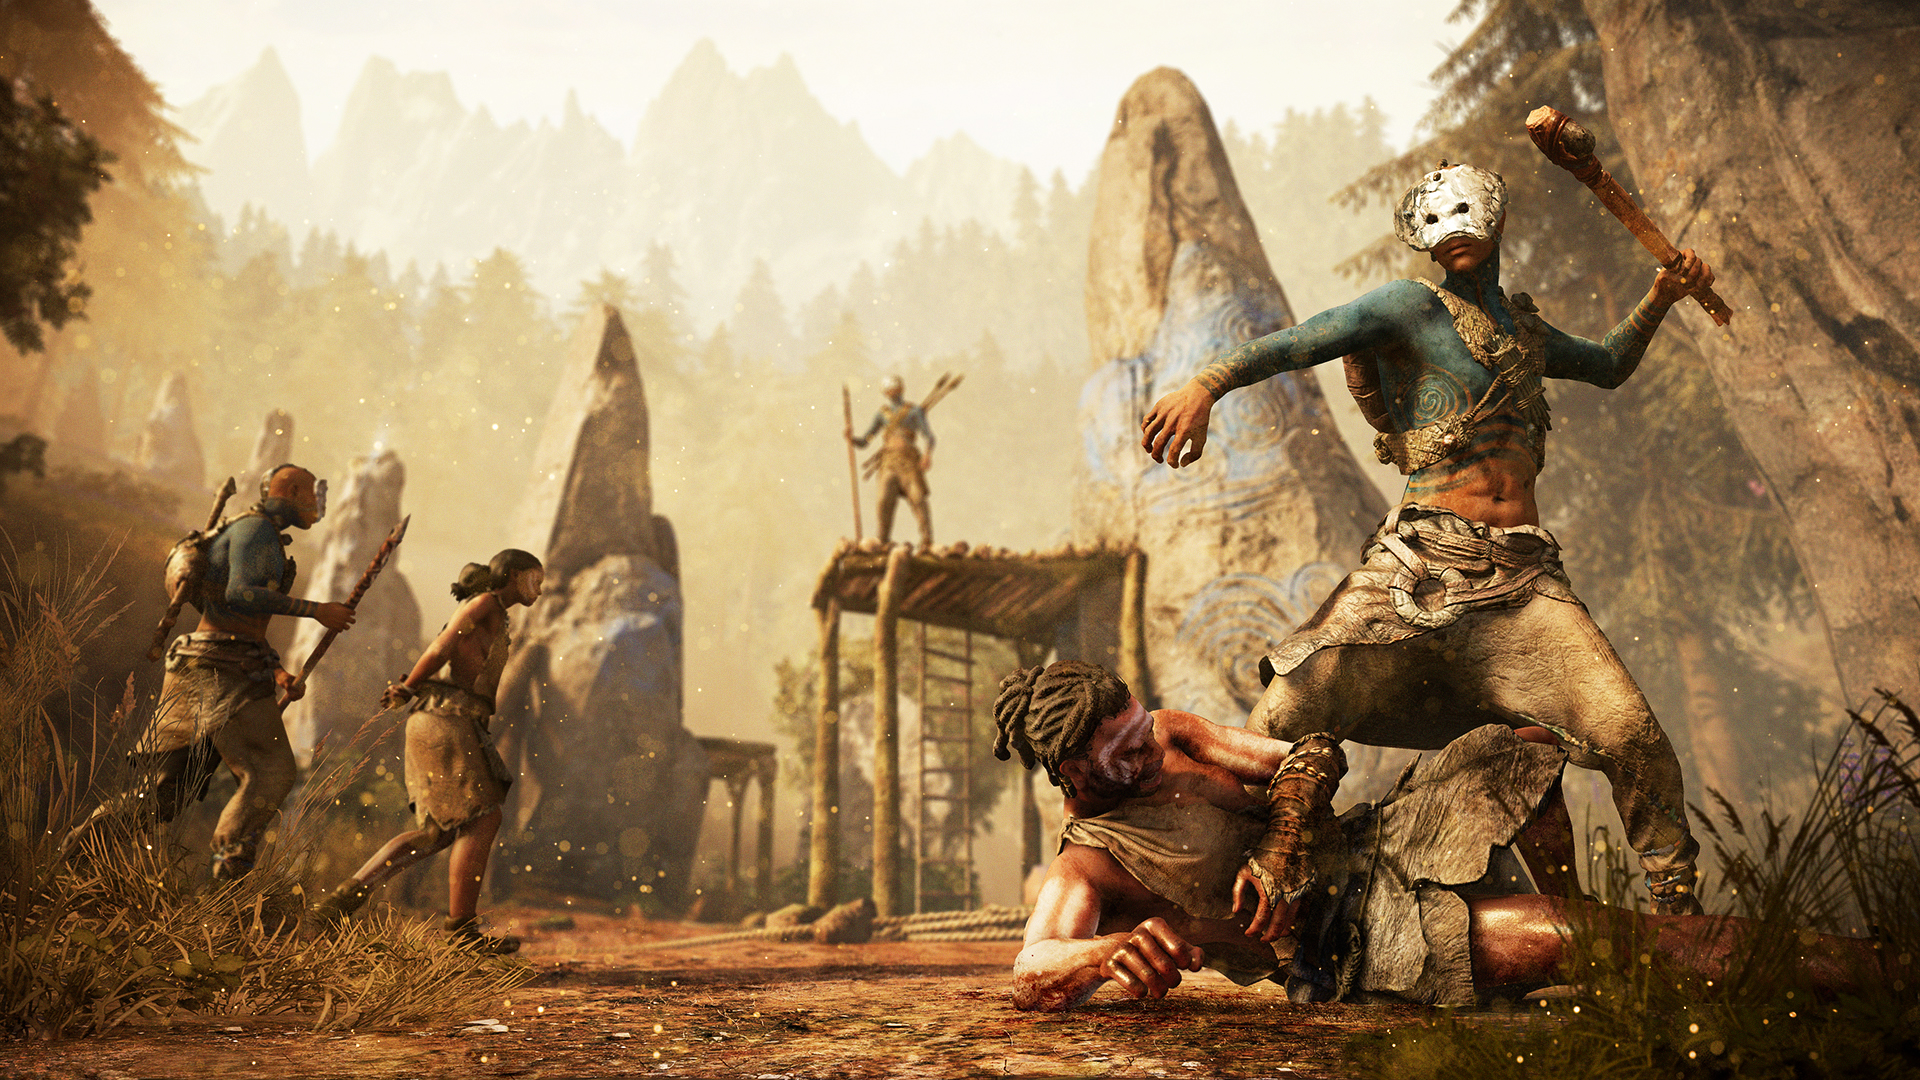 Kampf der Stämme in Far Cry Primal